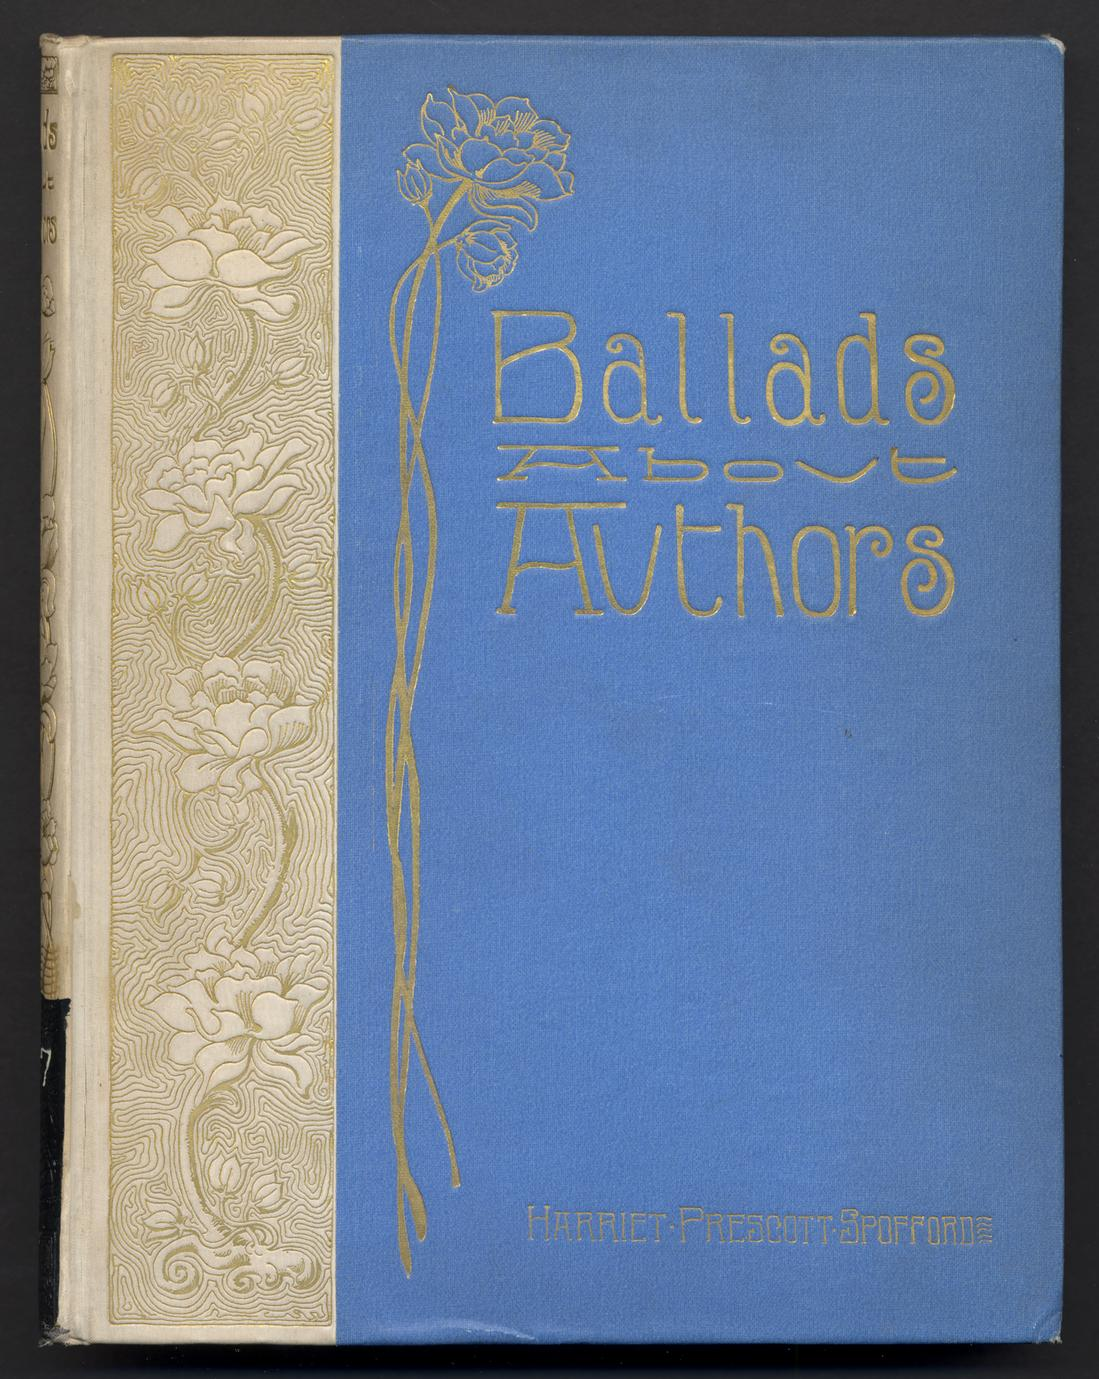 Ballads about authors (1 of 2)